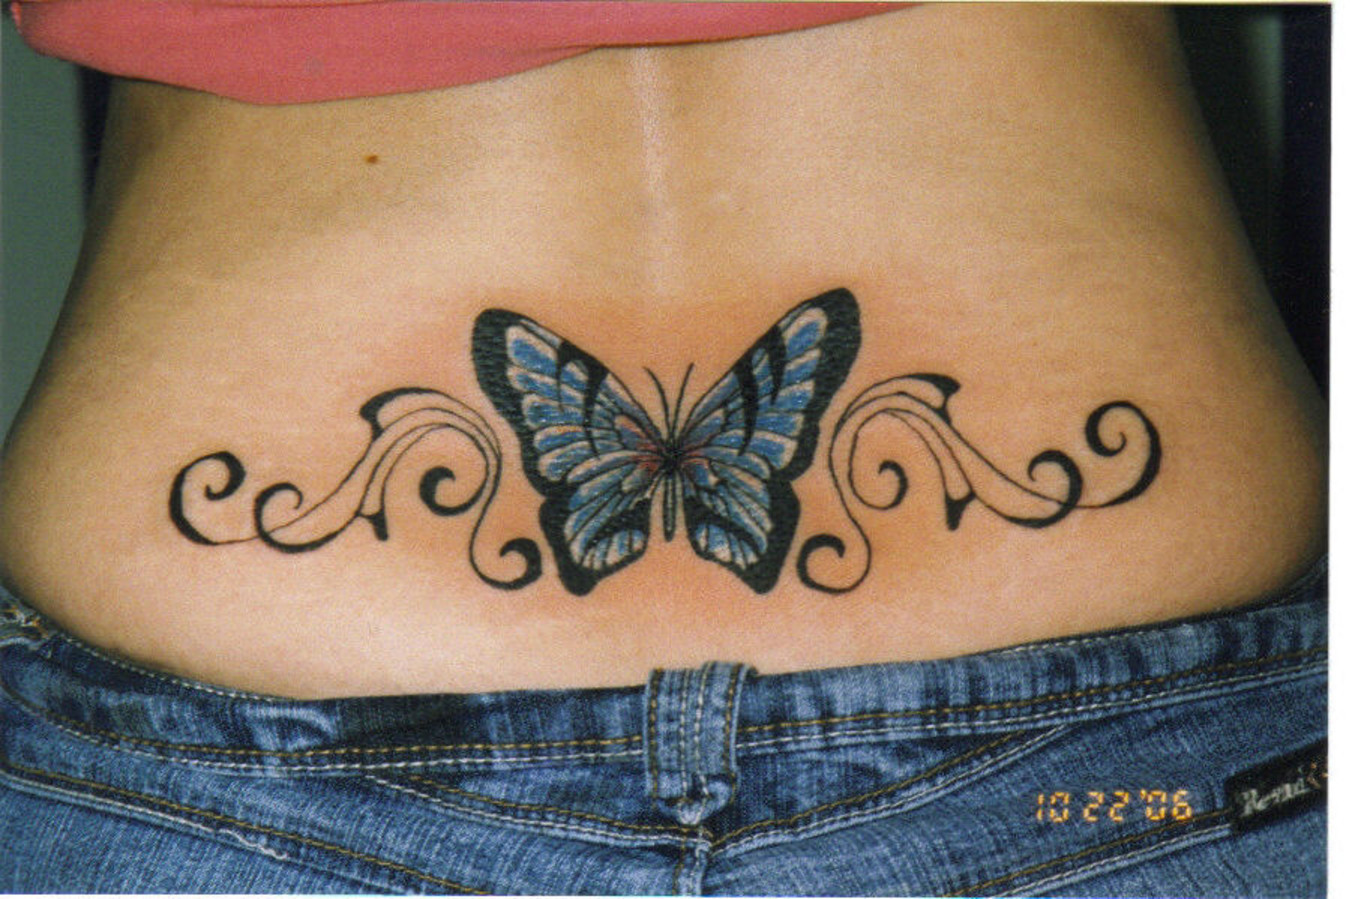 body art world tattoos lower back tattoos sure are hot. Black Bedroom Furniture Sets. Home Design Ideas